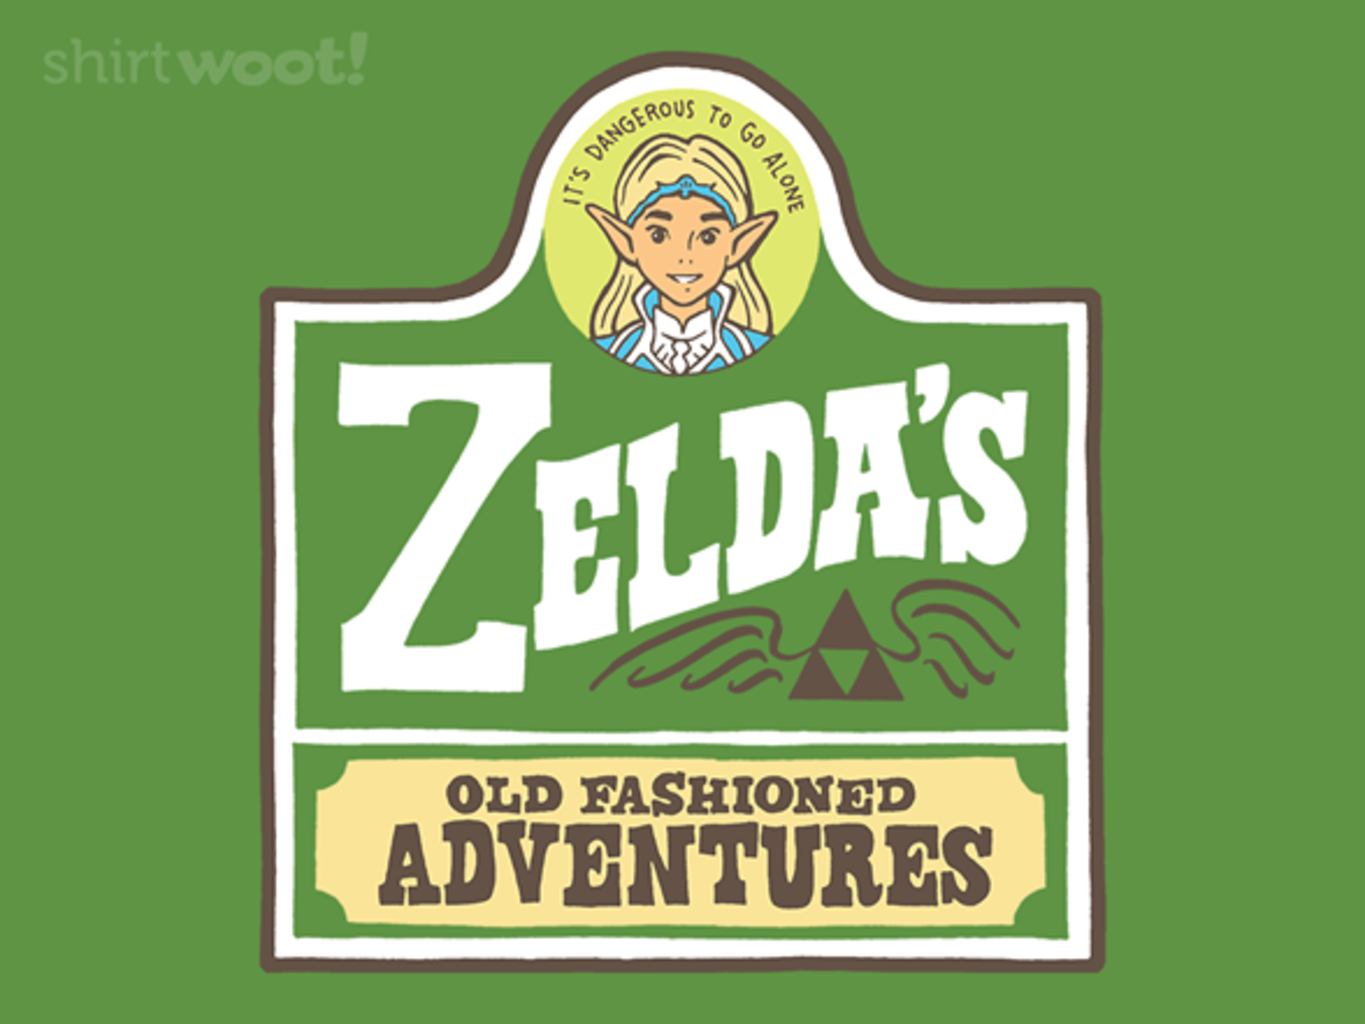 Woot!: Old Fashioned Adventures